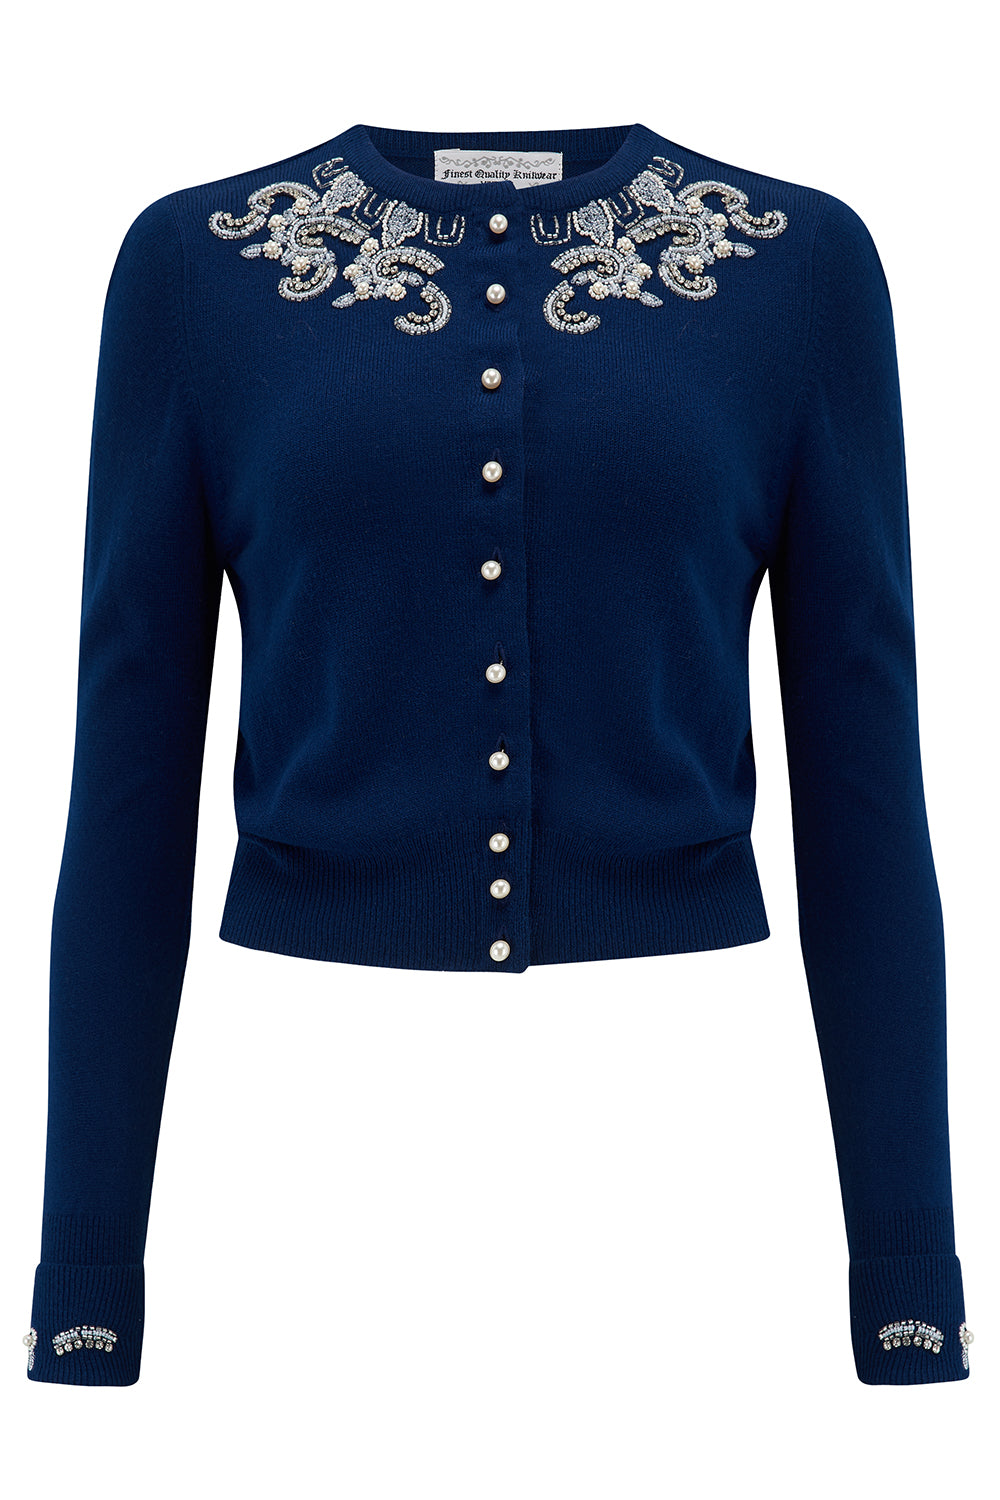 1940s Teenage Fashion: Girls The Beaded Cardigan in Navy Blue Stunning 1940s Vintage Style £69.00 AT vintagedancer.com